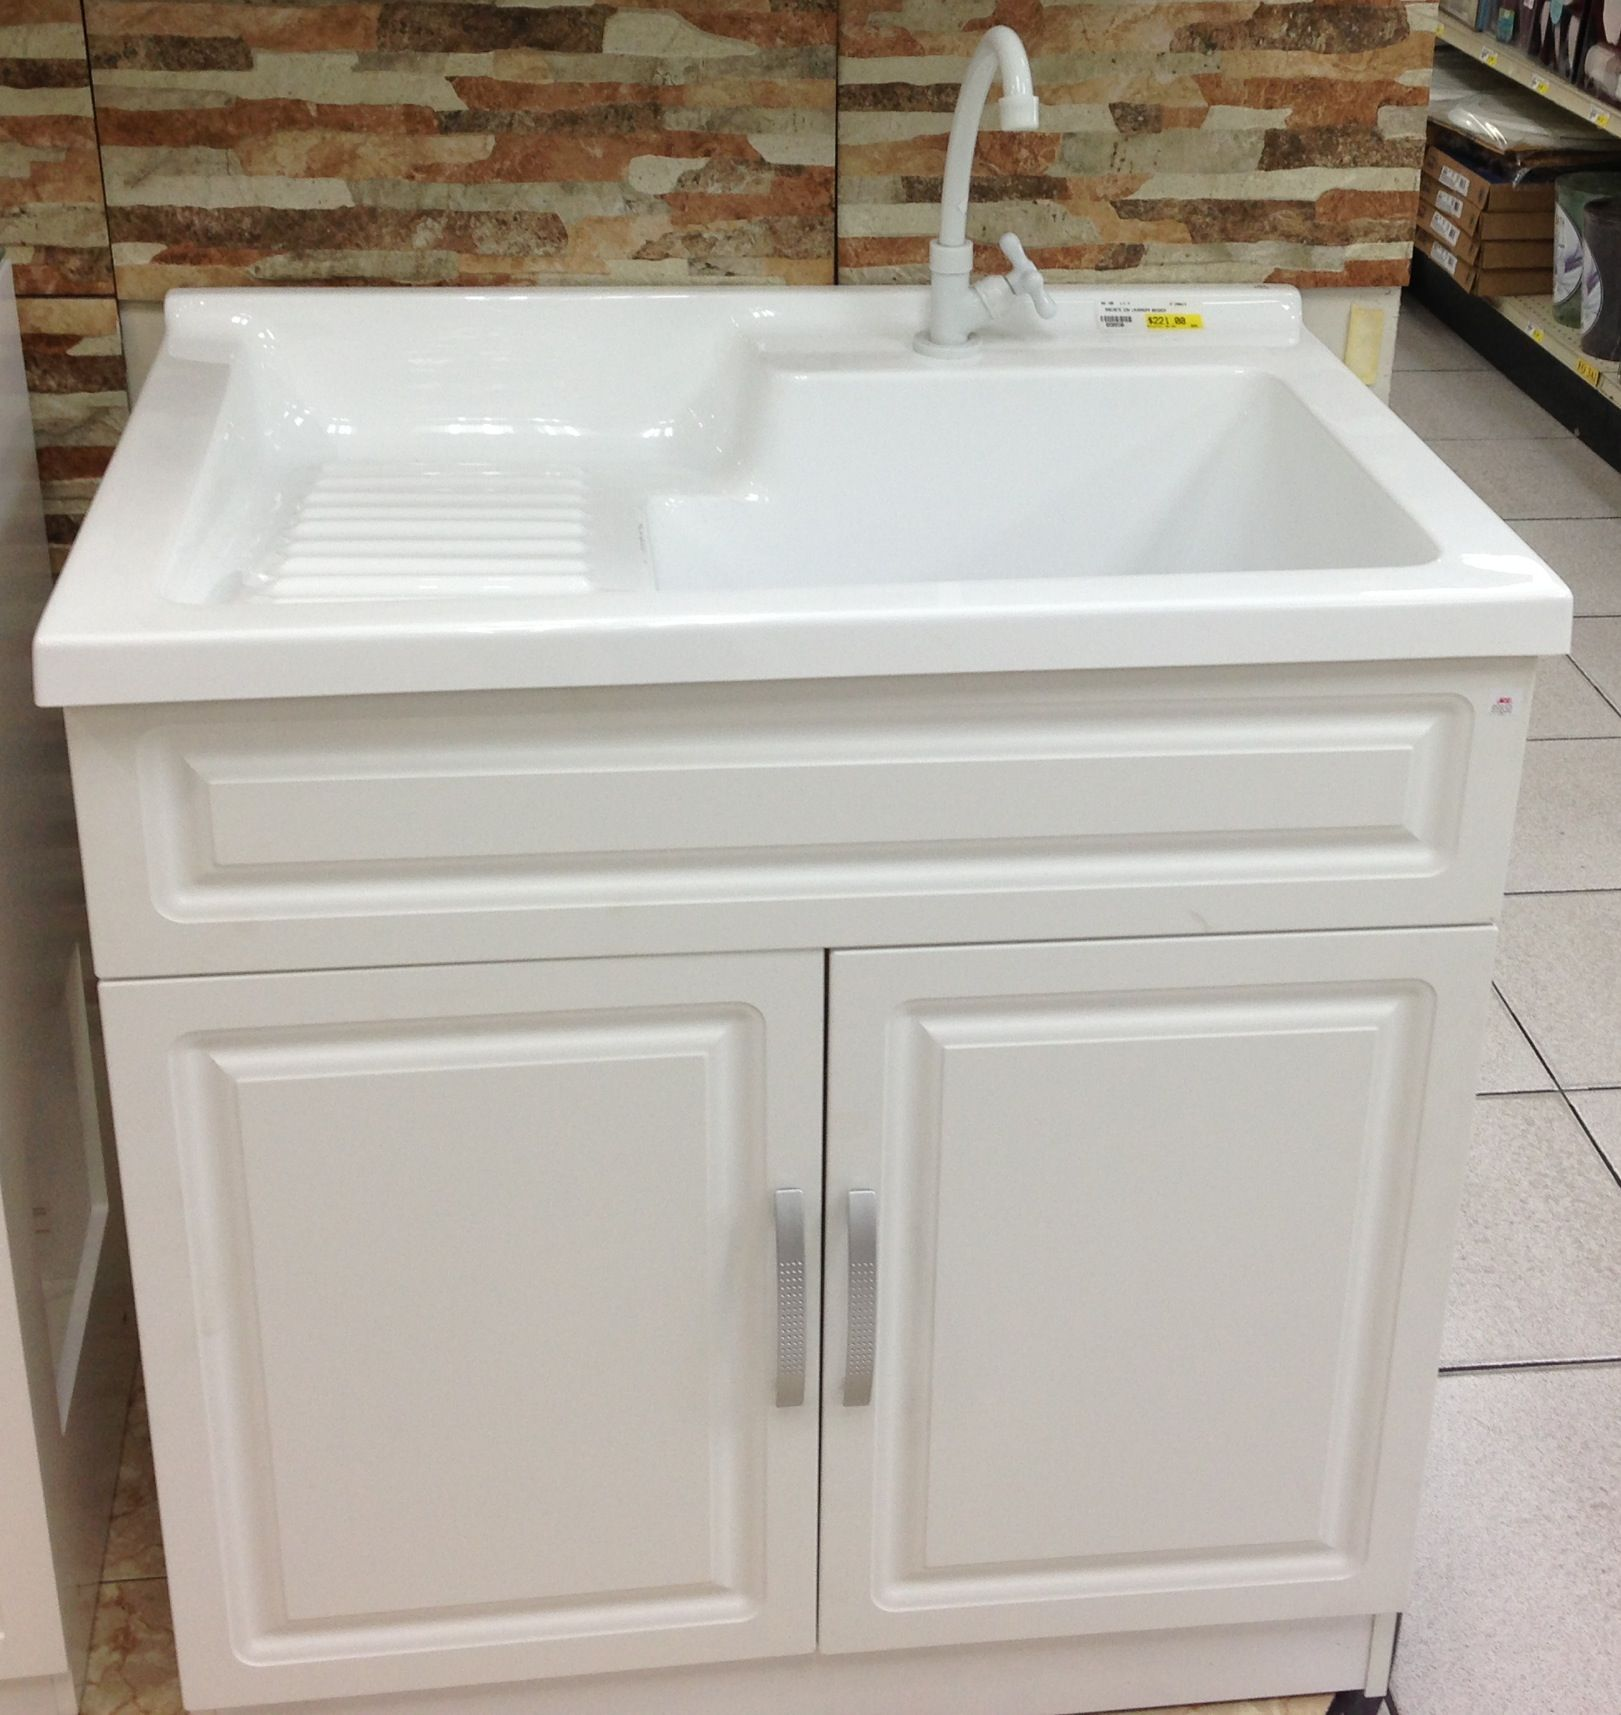 Nice Functional Laundry Sink. Corstone Self Rimming At Lowes For $145